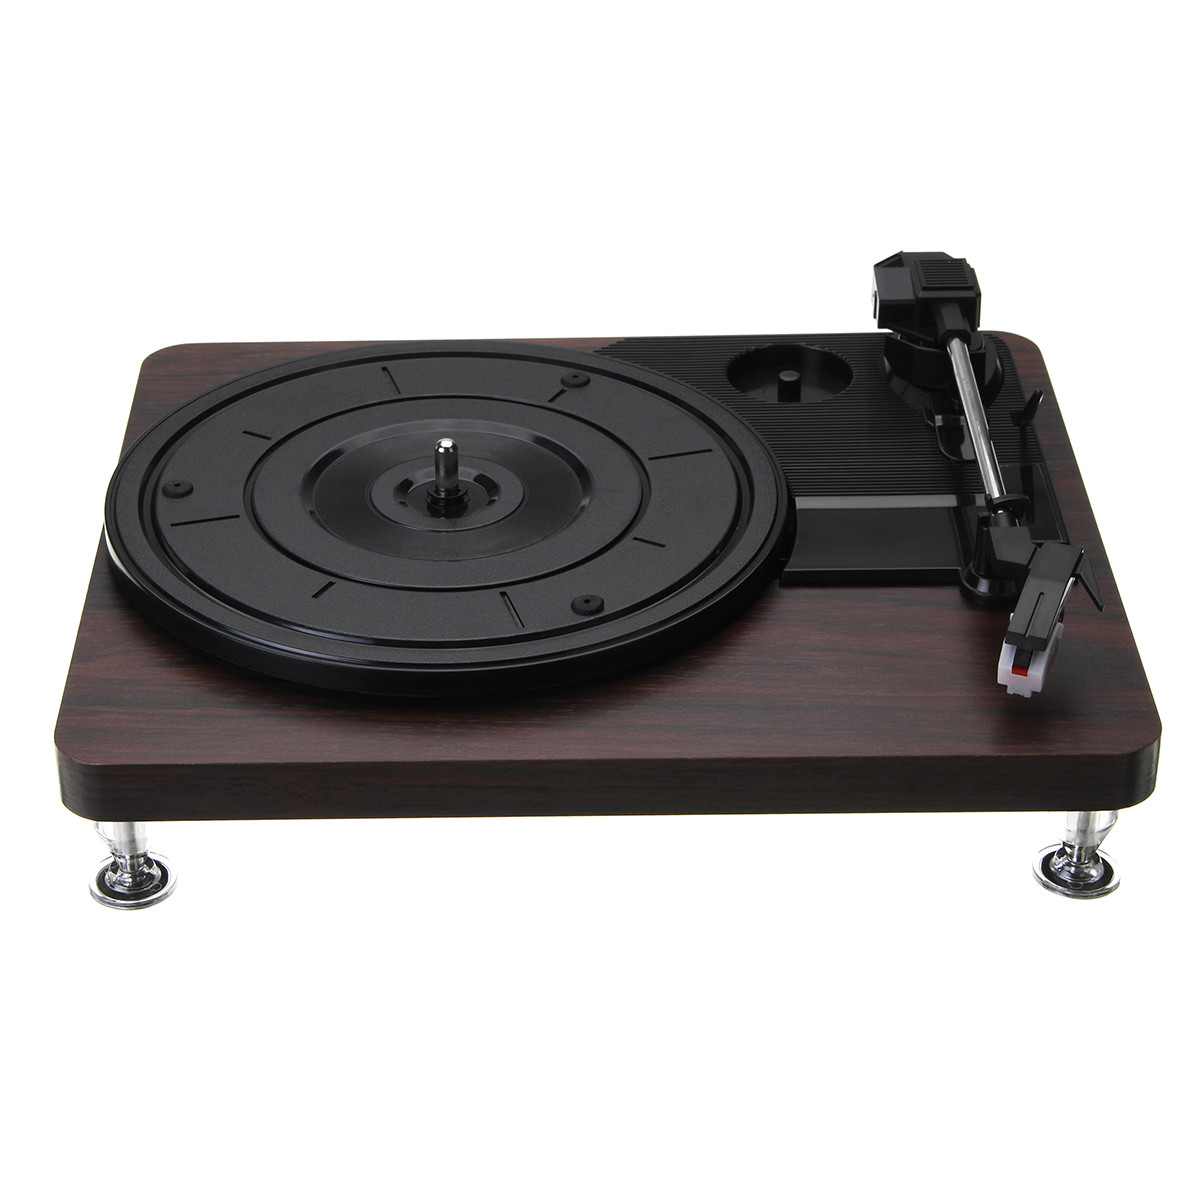 Tragbares Audio & Video Stetig Holz Farbe Rekord Retro Player 33 Rpm Tragbare Audio Grammophon Plattenspieler Disc Vinyl Audio Rca R/l 3,5mm Ausgang Out Usb Dc 5 V